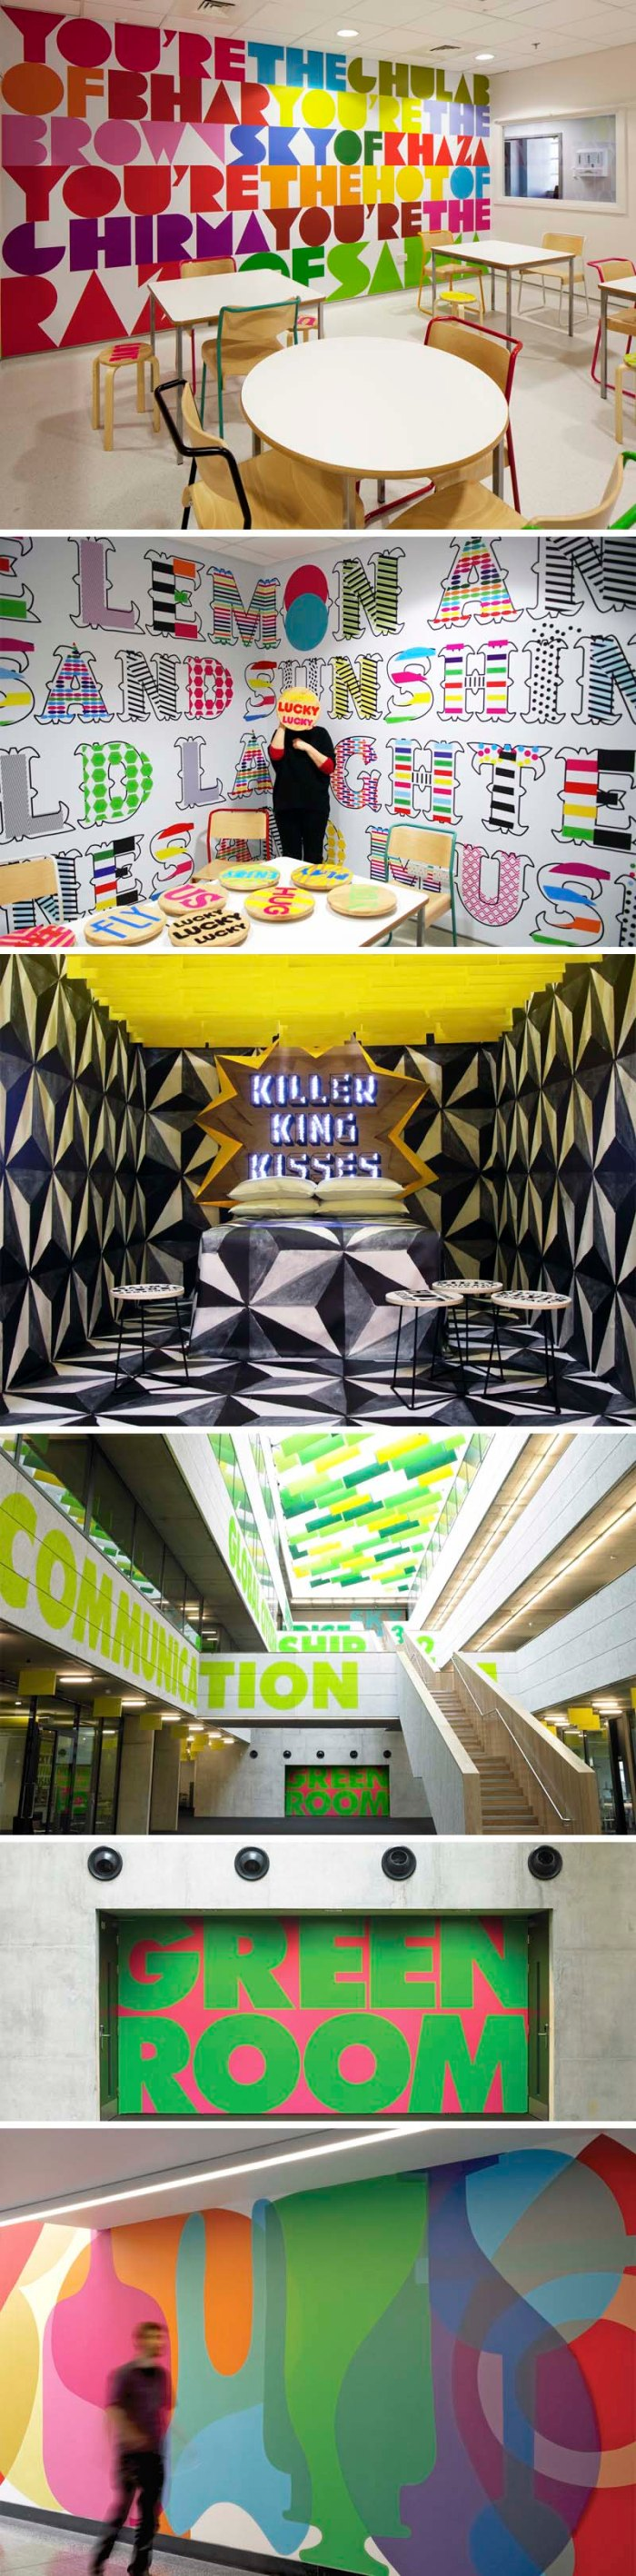 Morag Myerscough, Studio Myerscough, Typography, fun environmental graphics, bold colored type murals